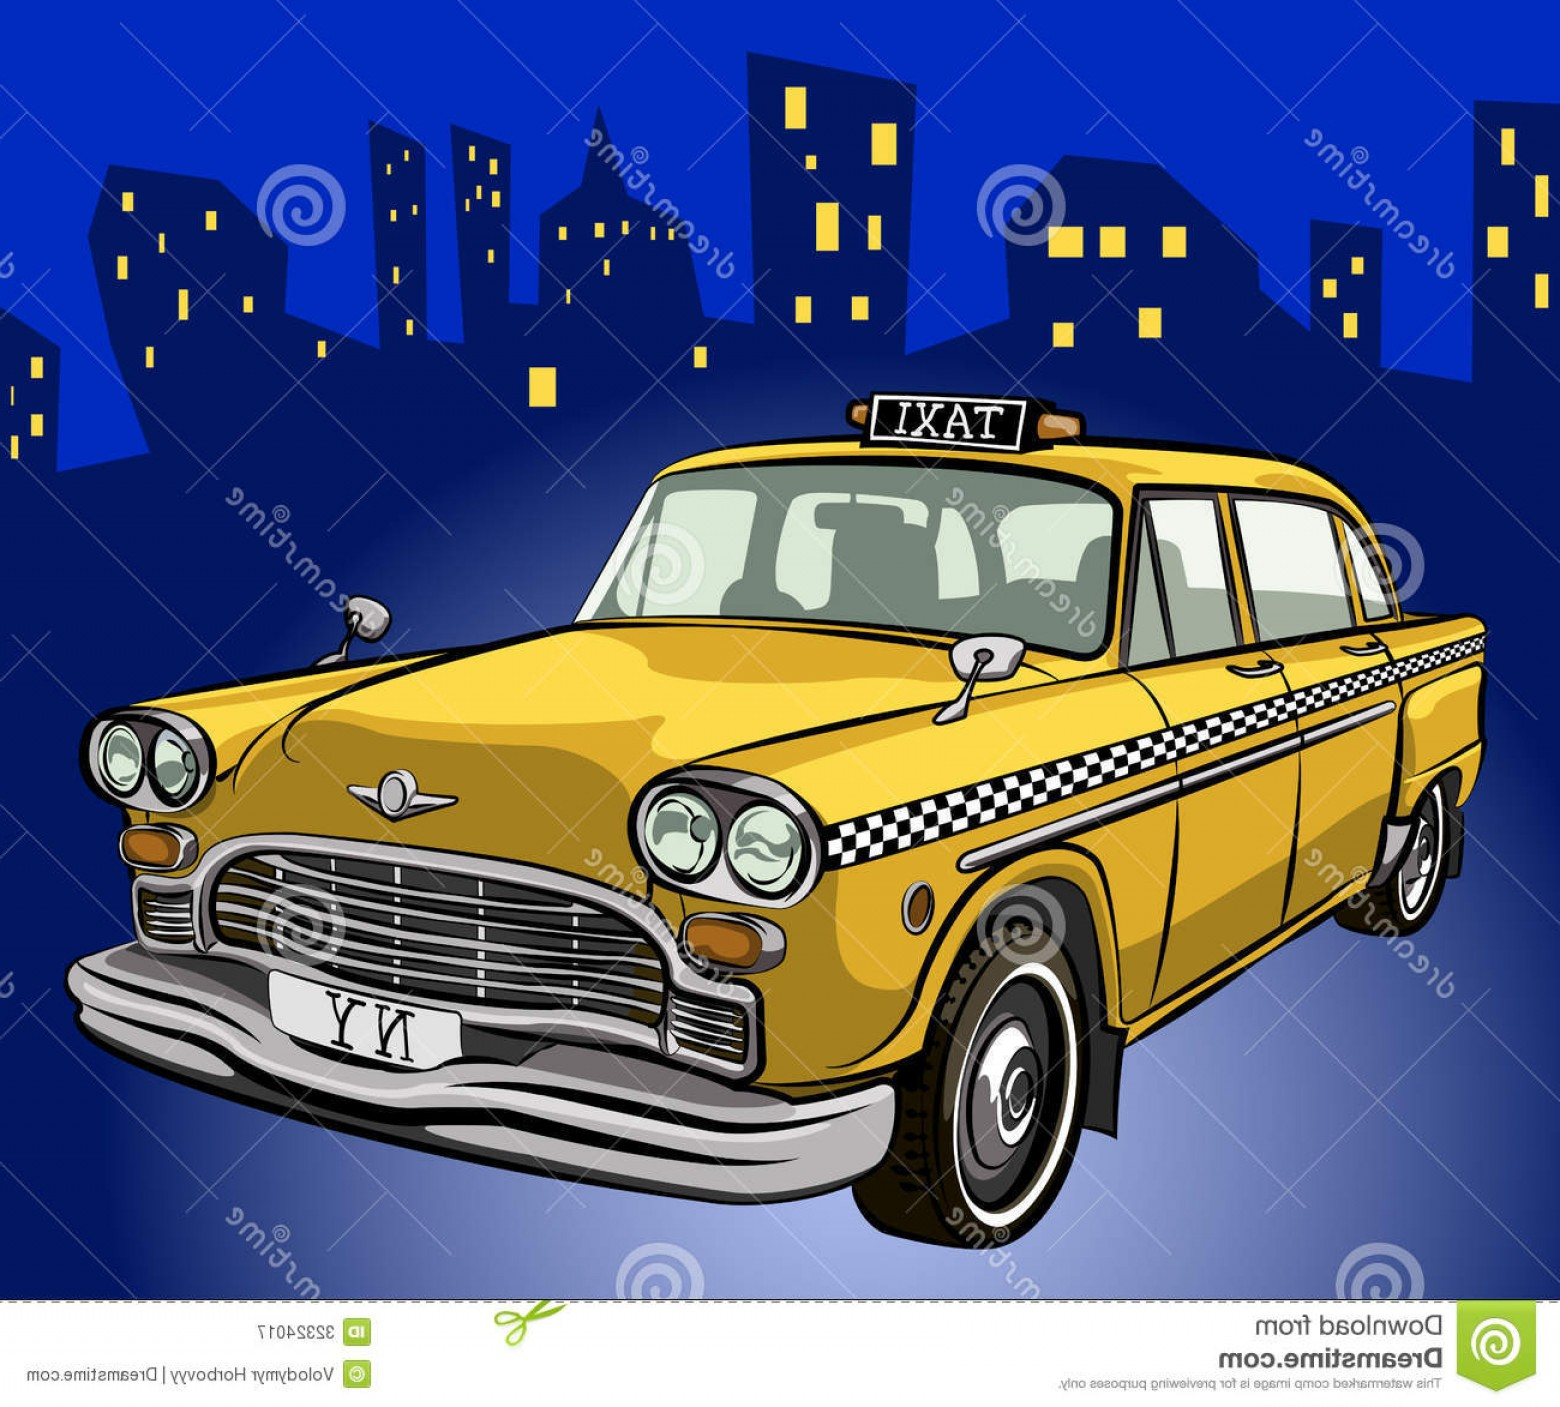 Taxi Checkers Vector: Royalty Free Stock Photography Checker Taxi Night City Image